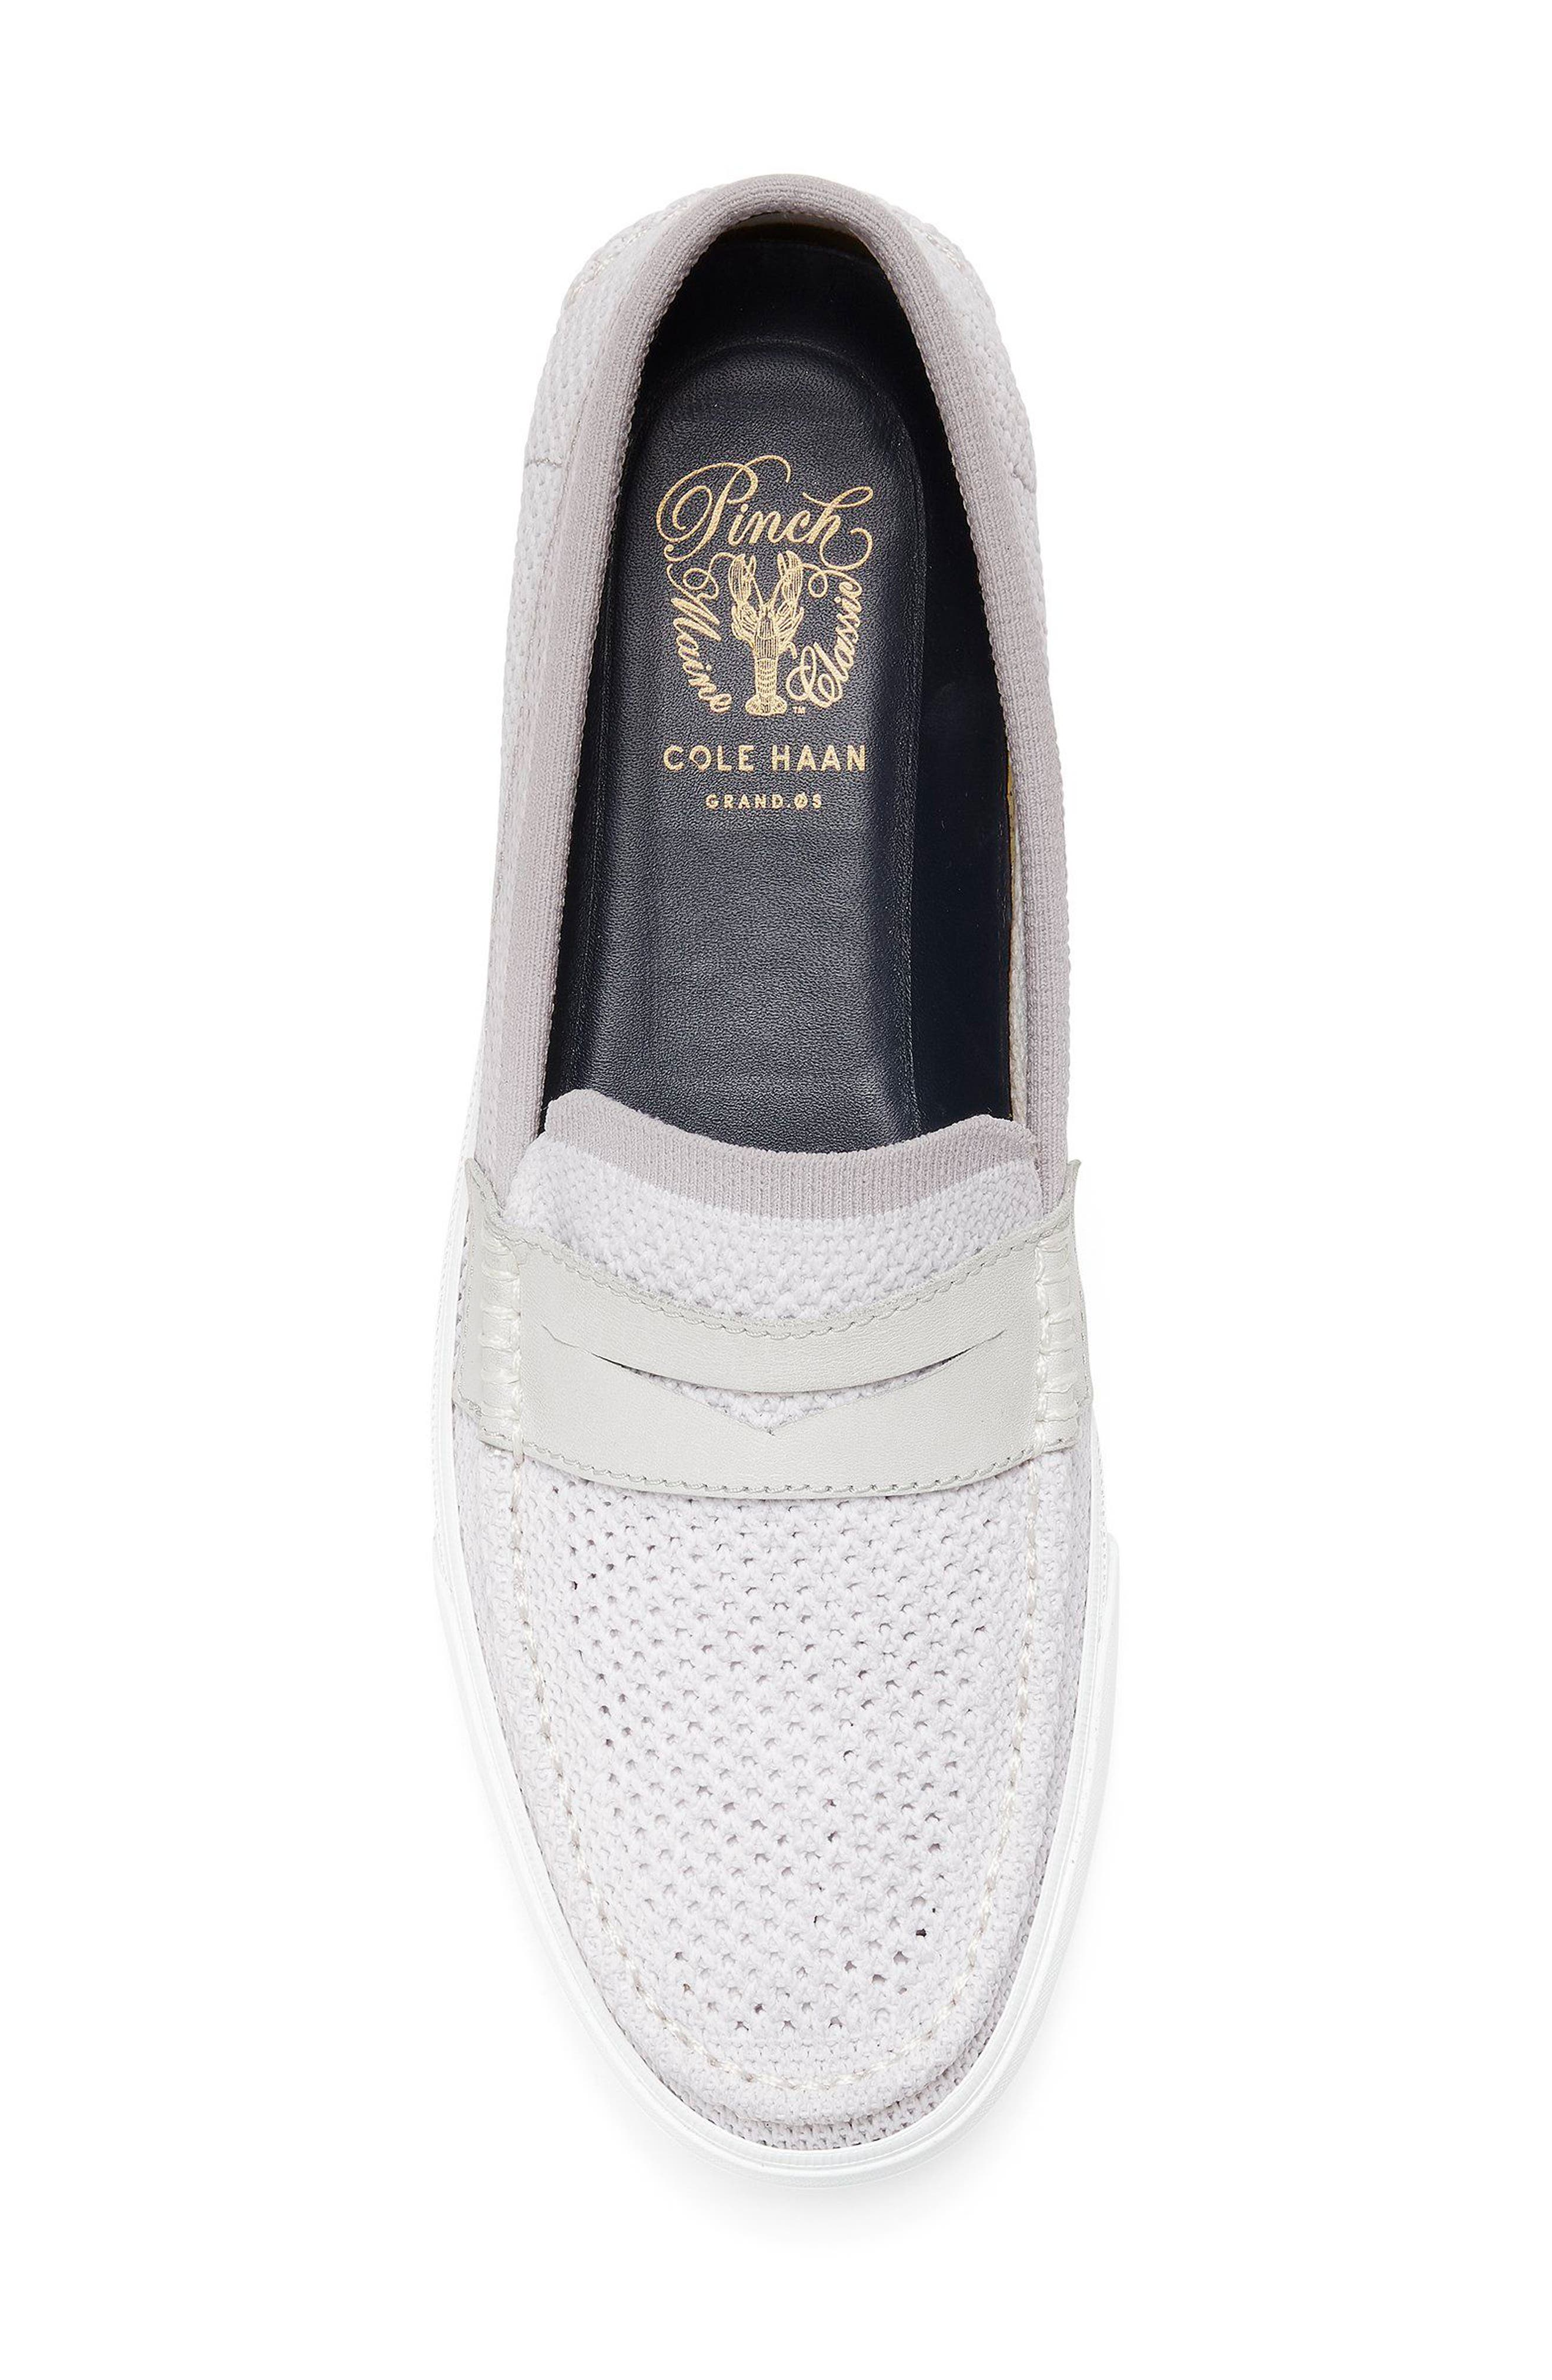 Pinch Stitch LX Stitchlite<sup>™</sup> Penny Loafer,                             Alternate thumbnail 5, color,                             VAPOR GREY /OPTIC WHITE